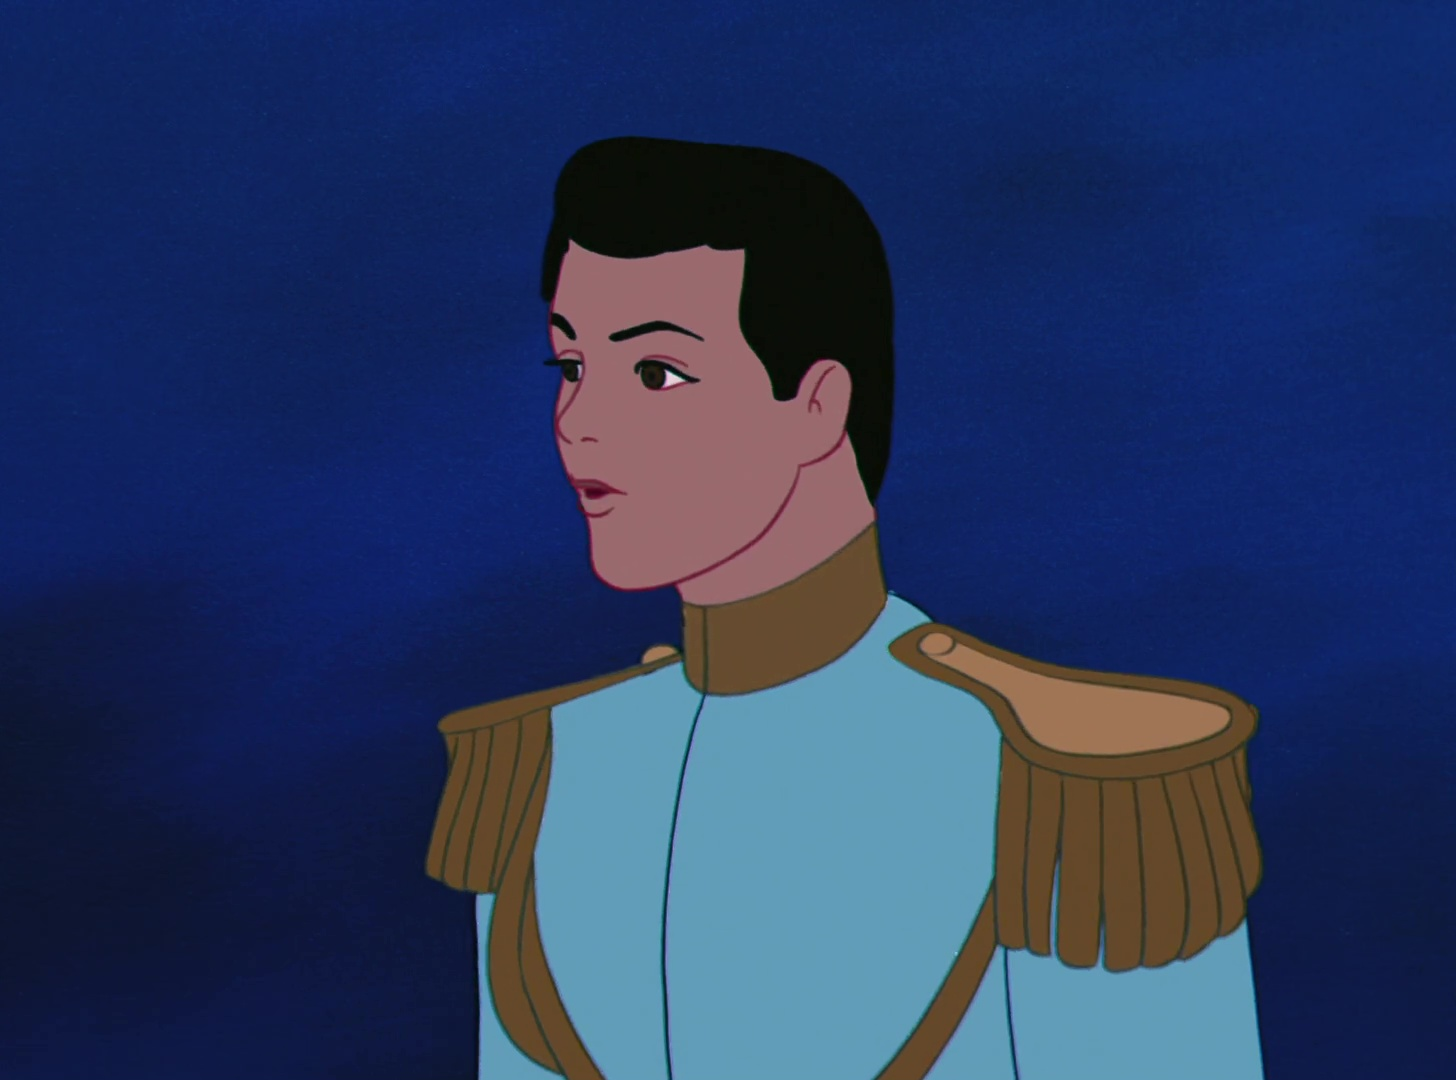 prince messager disney personnage character cendrillon cinderella